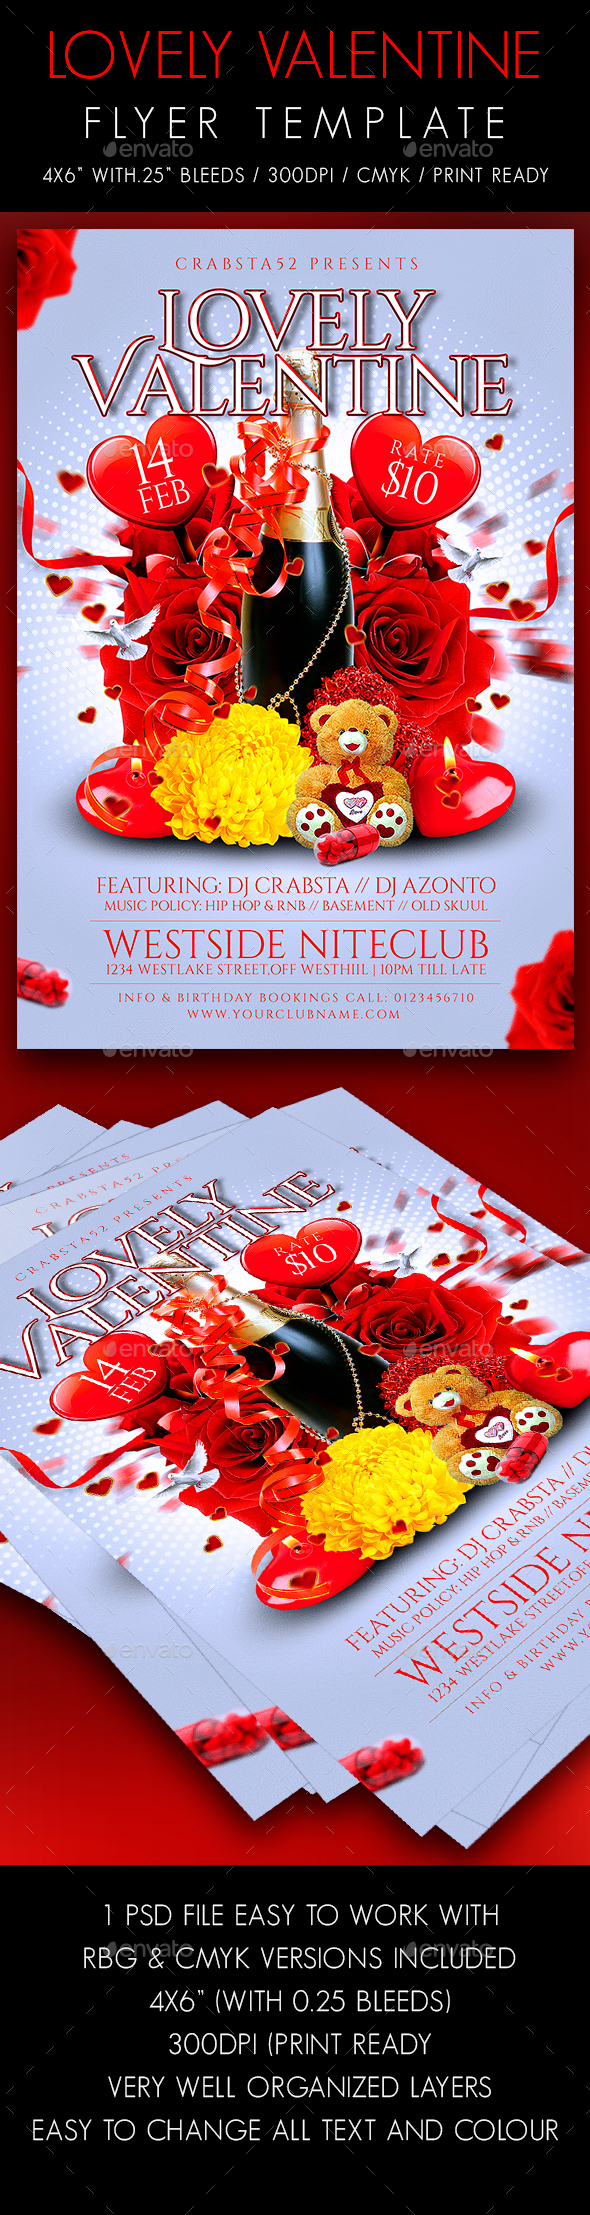 Lovely Valentine Flyer Template - Events Flyers